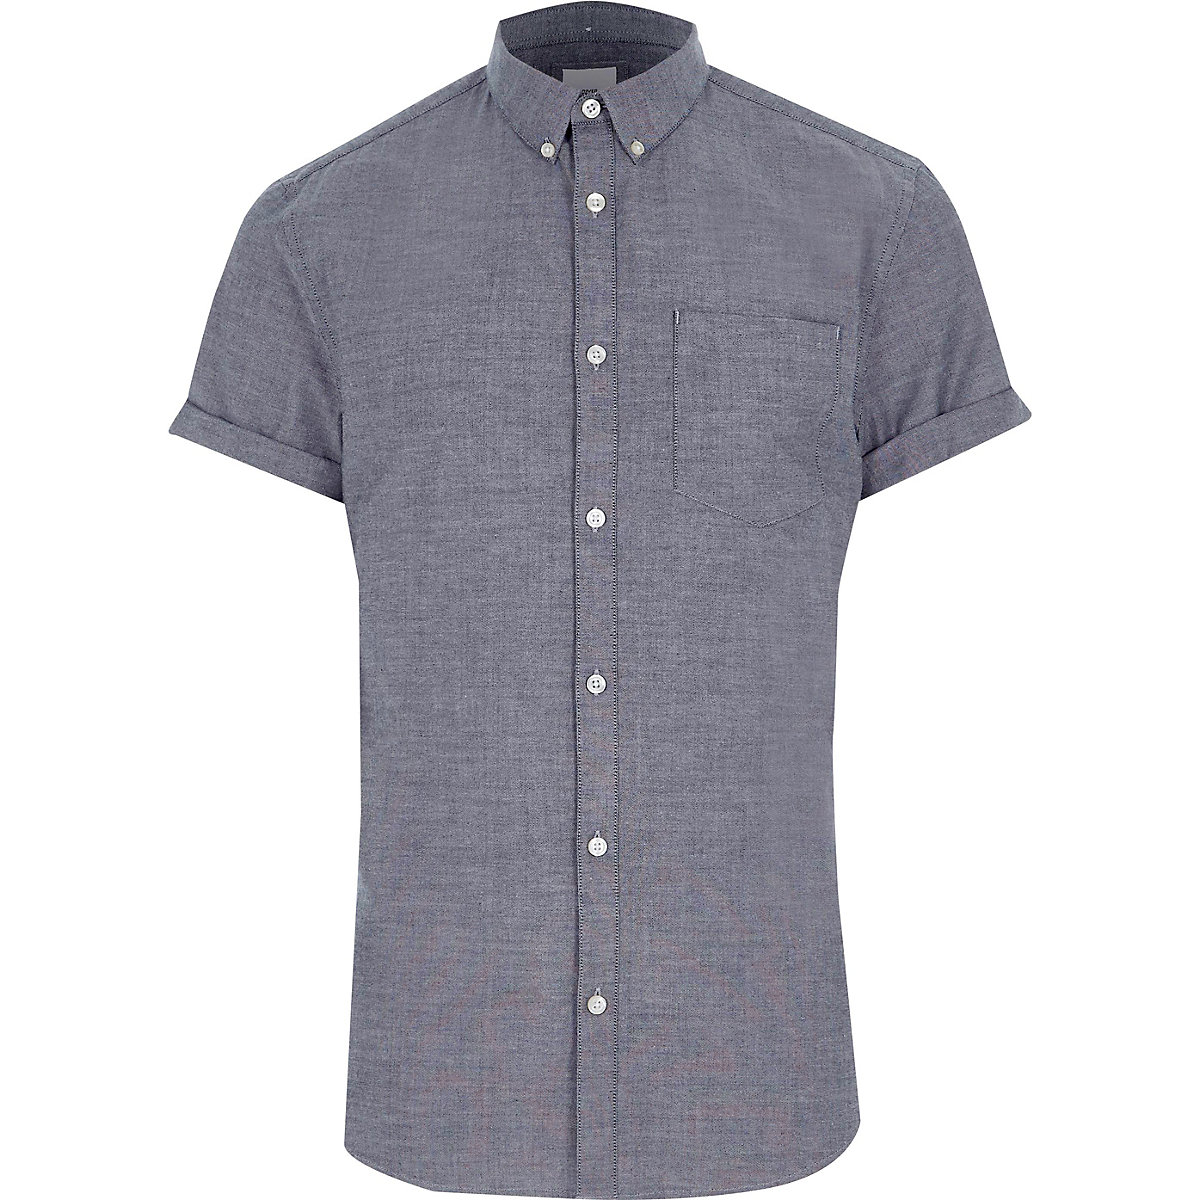 Grey muscle fit short sleeve Oxford shirt